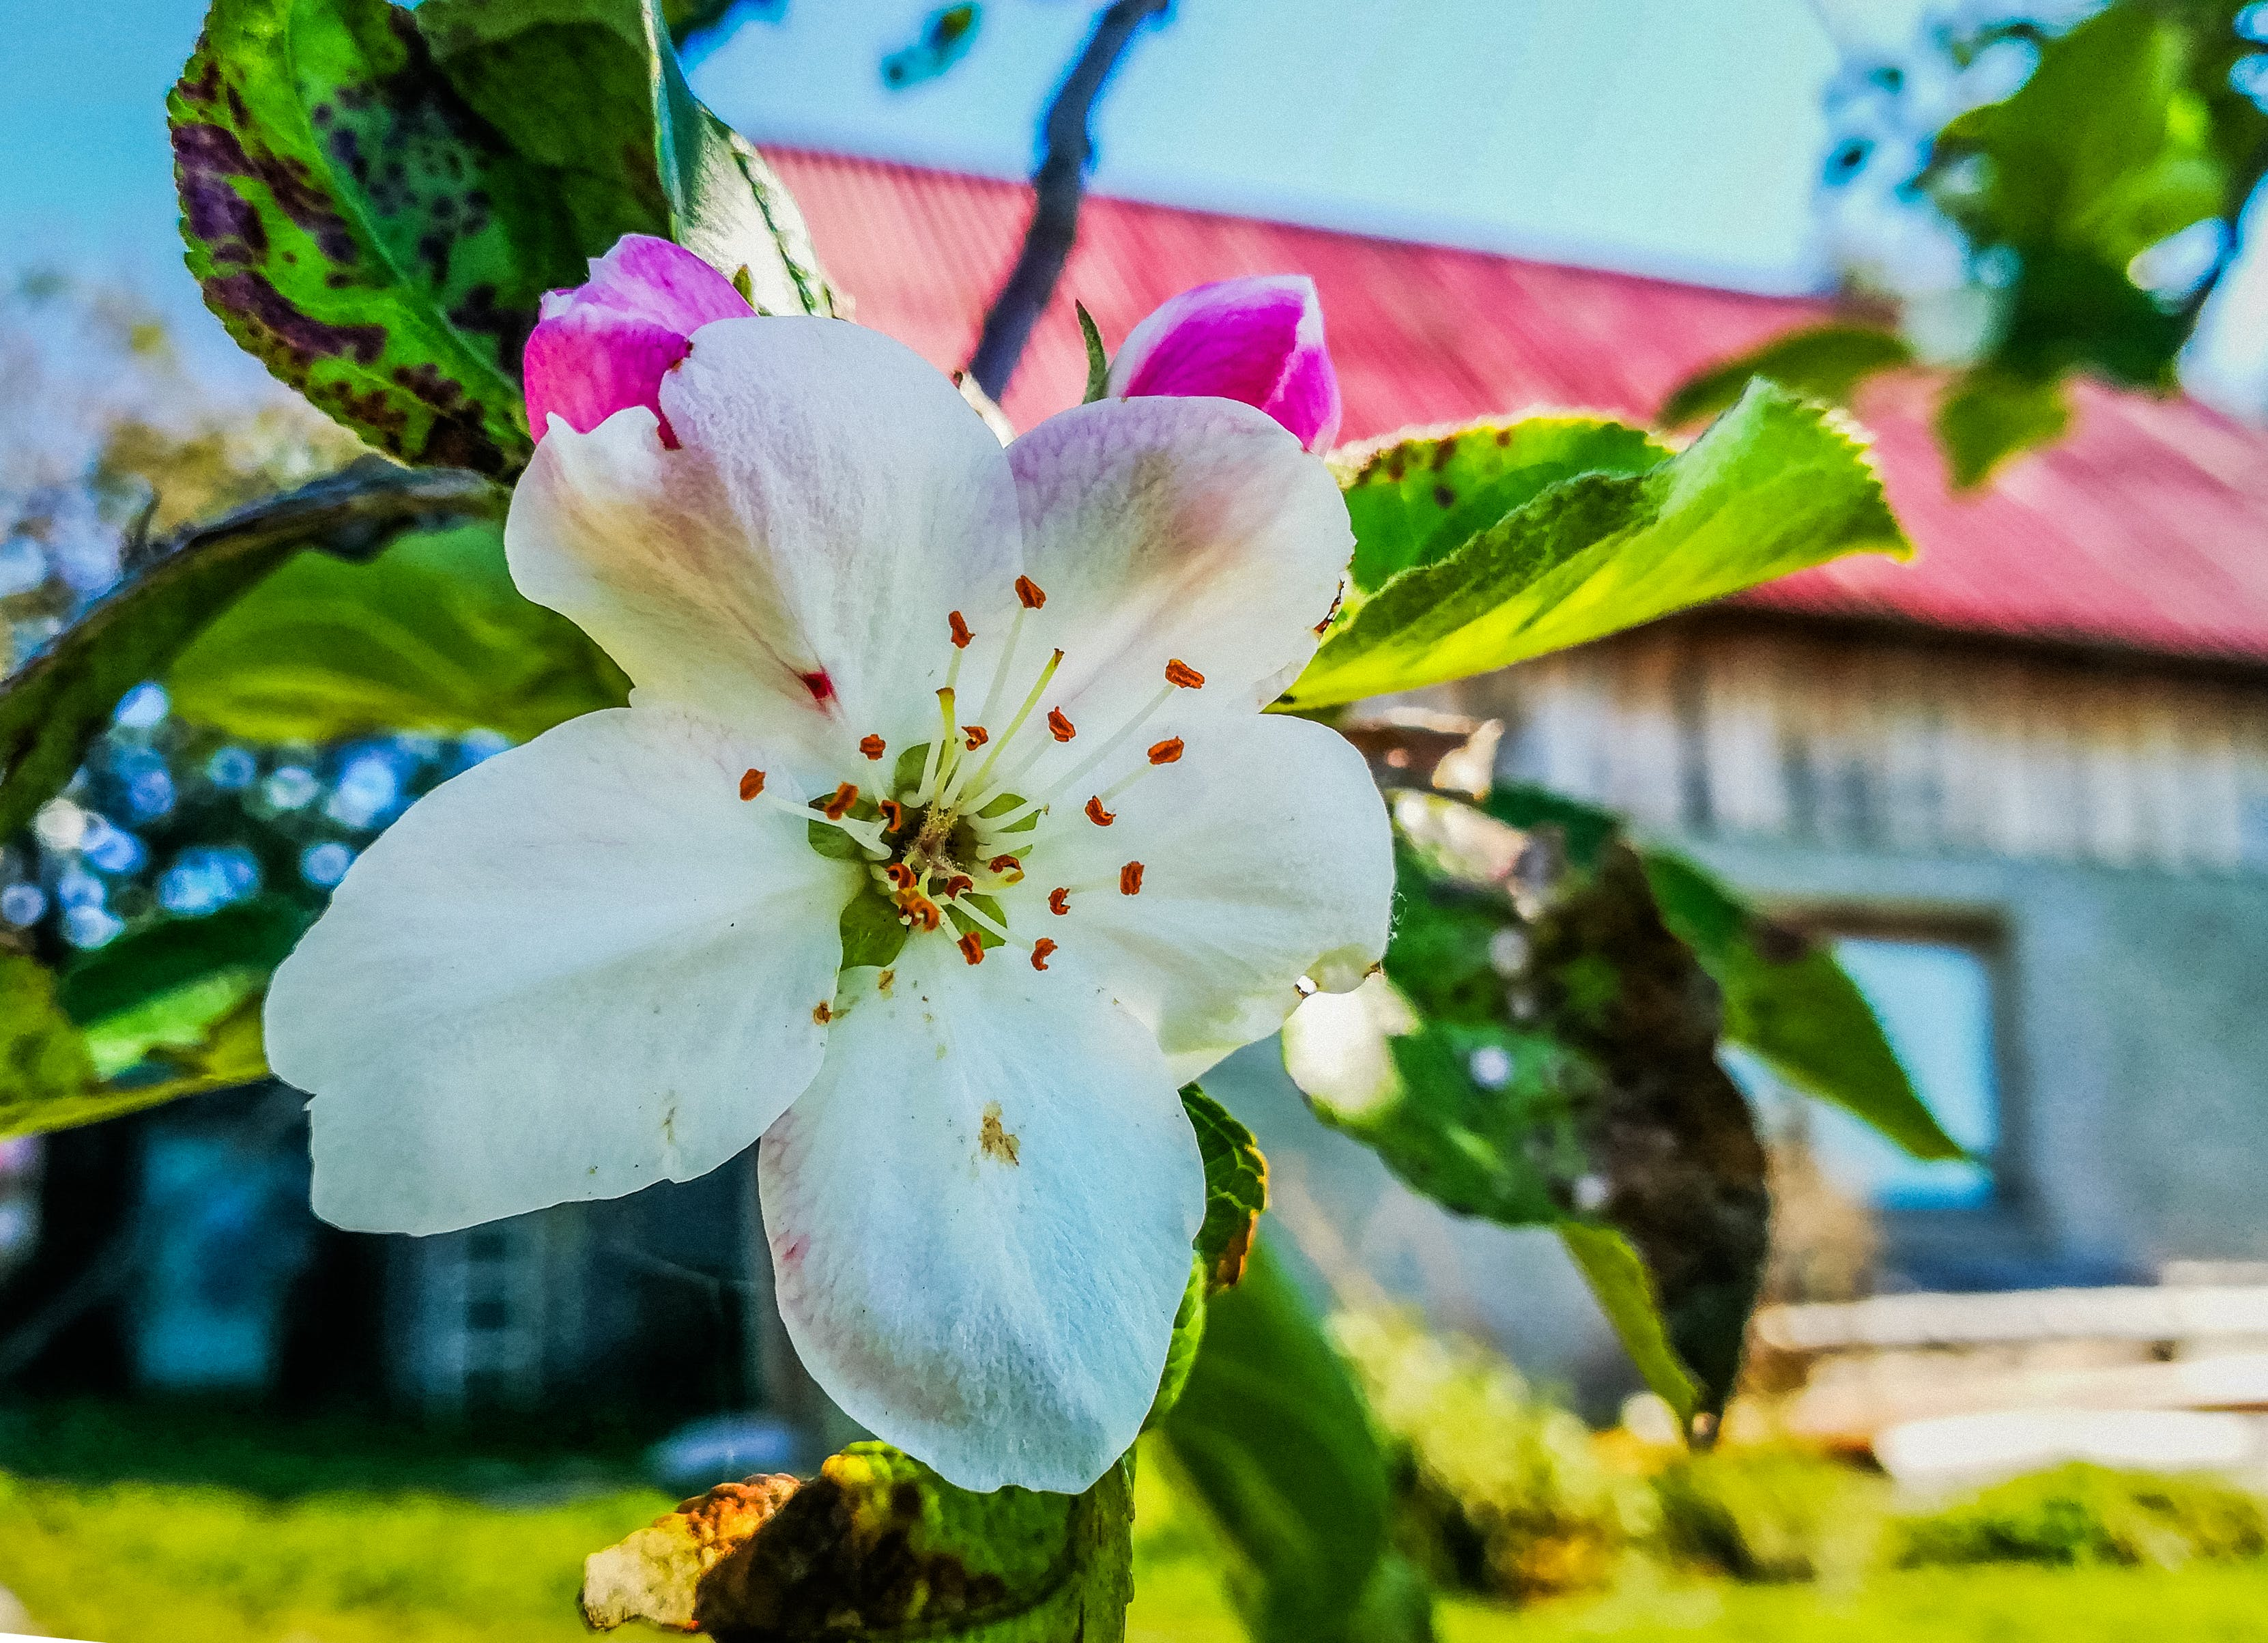 Free stock photo of apple-tree flowers, flower, white